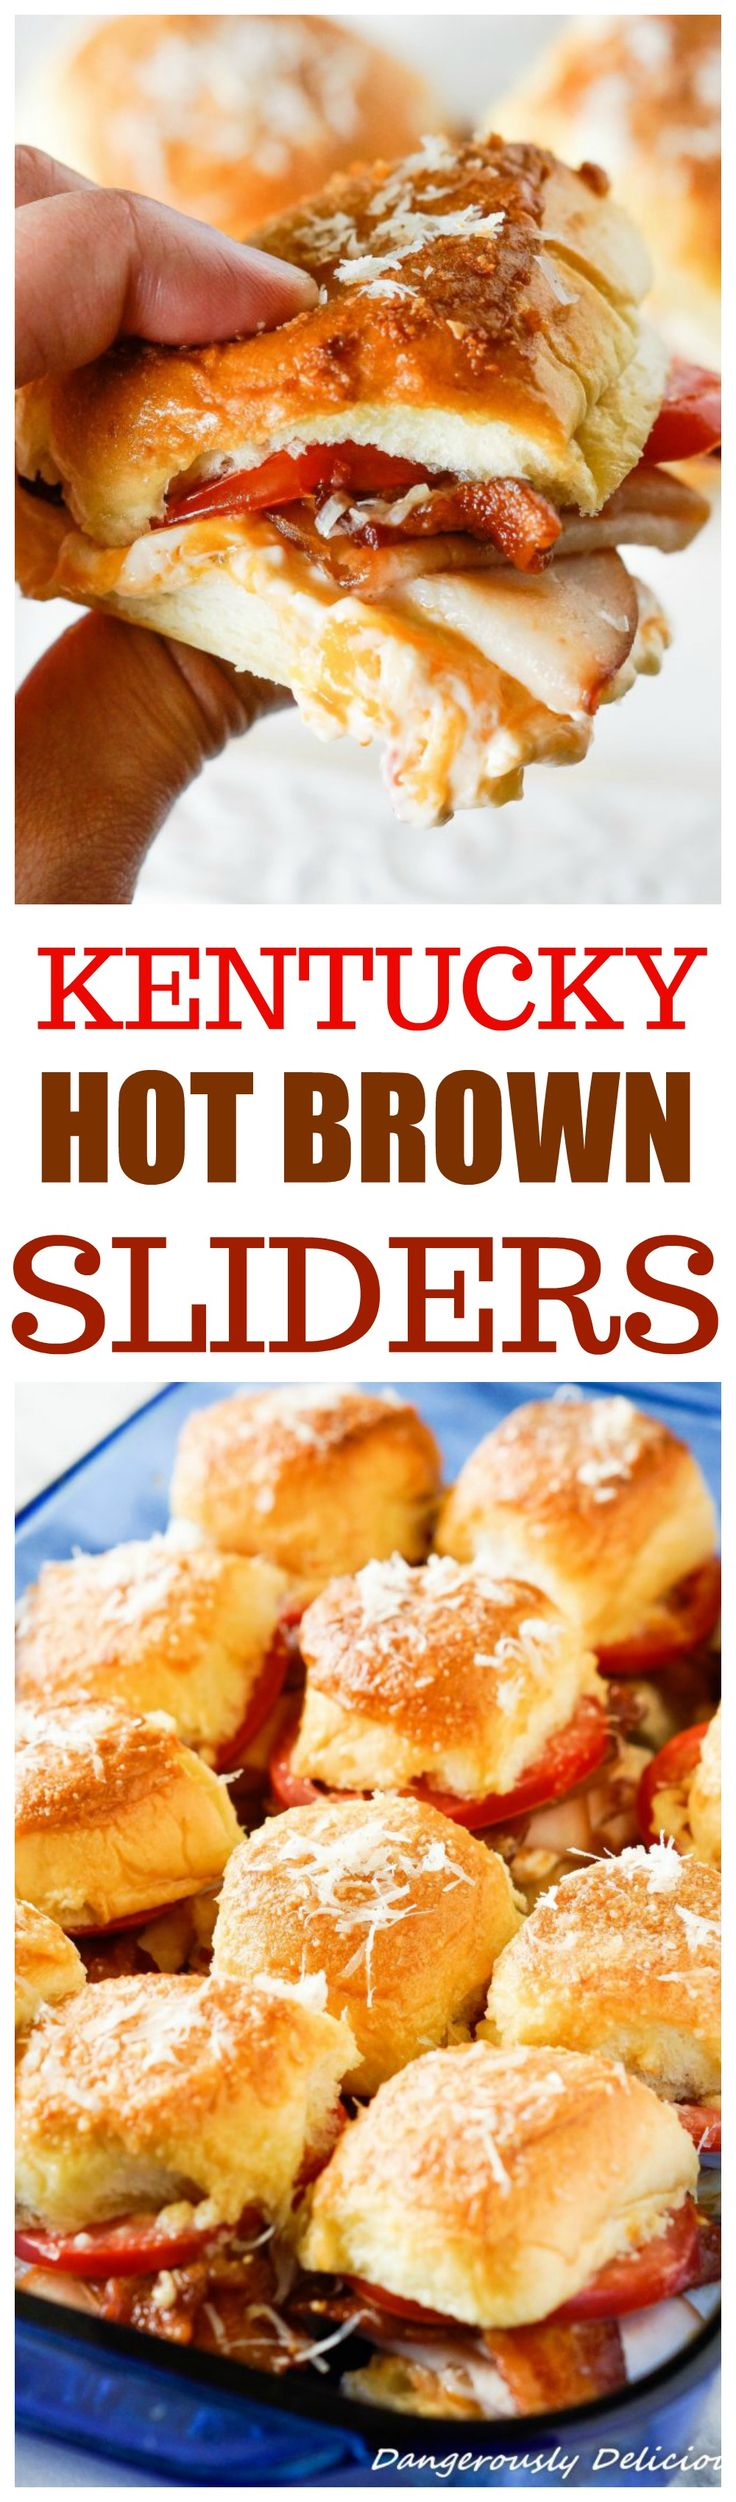 Thank you Crystal from Dangerously Delicious for sharing these Kentucky Hot Brown Sliders! Kentucky Hot Brown Sliders, a famous open-faced sandwich served at the Brown Hotel in Kentucky has now been t